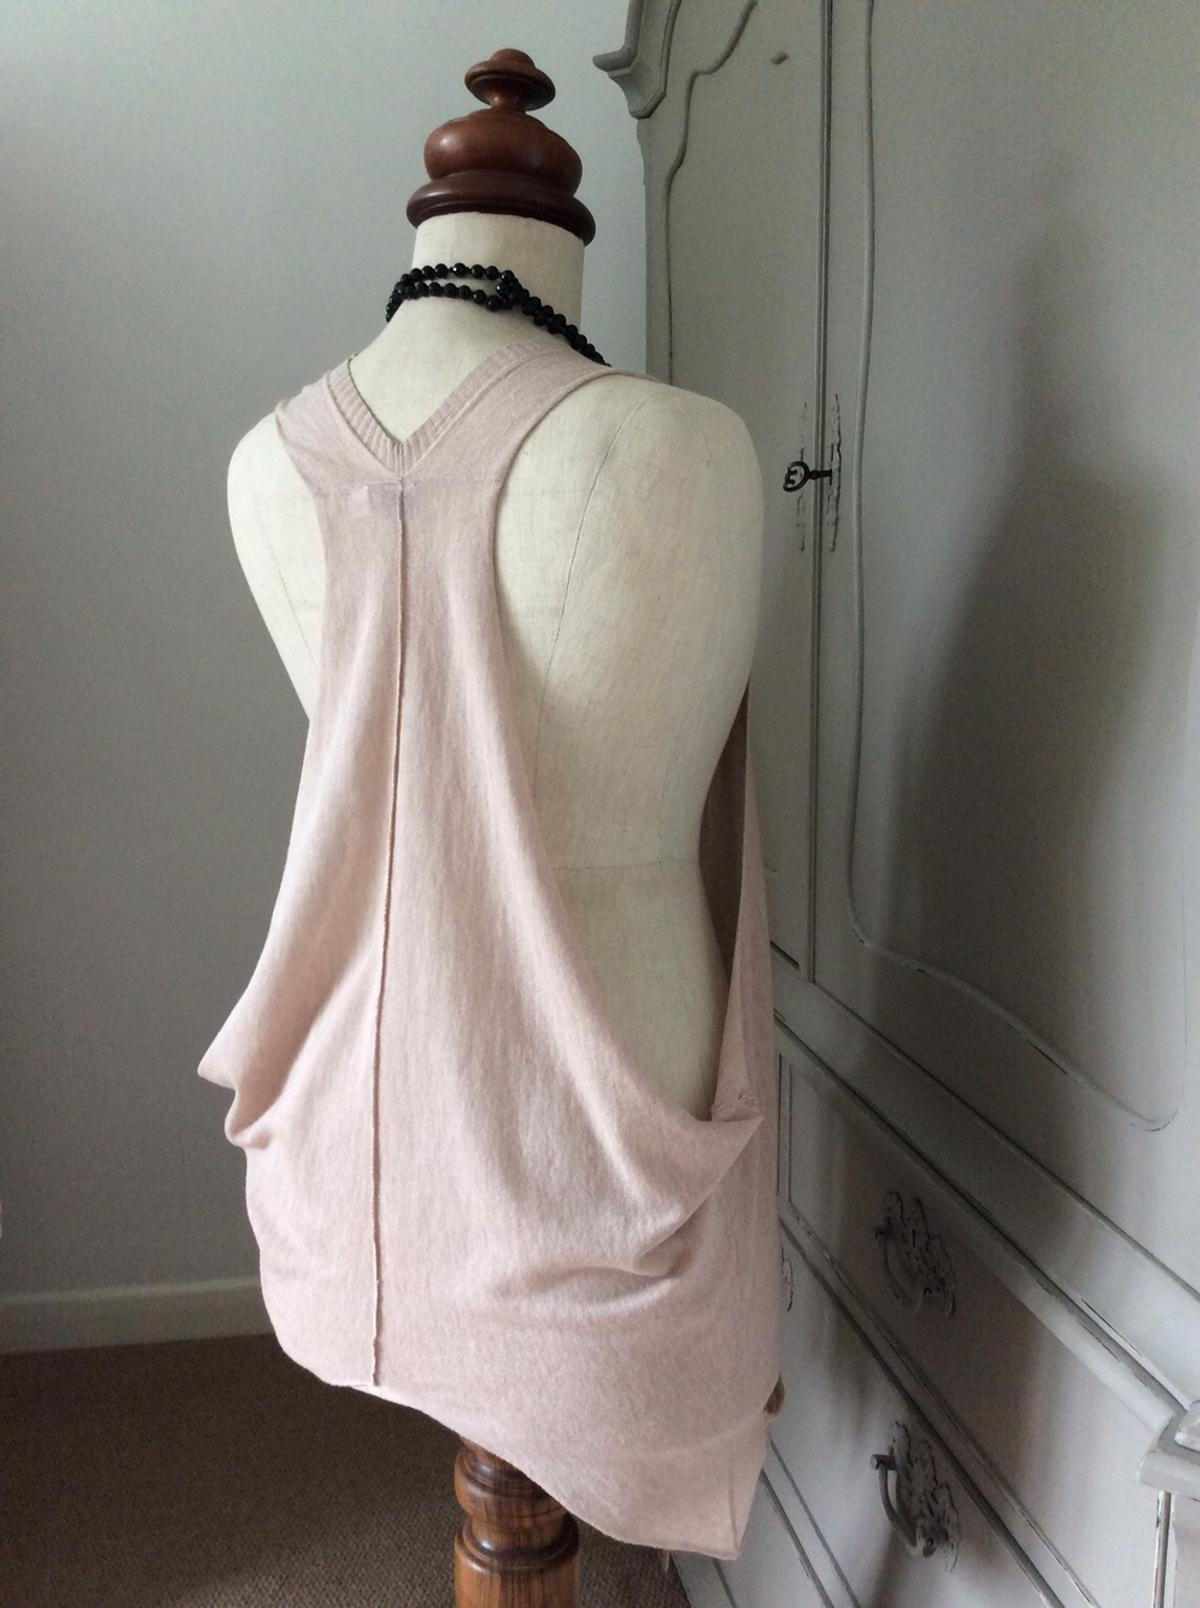 A trendy waistcoat by Hoxton Chic. Lovely soft cotton knit in a light beige colour. Elongated armholes & dainty pockets to both front panels. Never been worn.